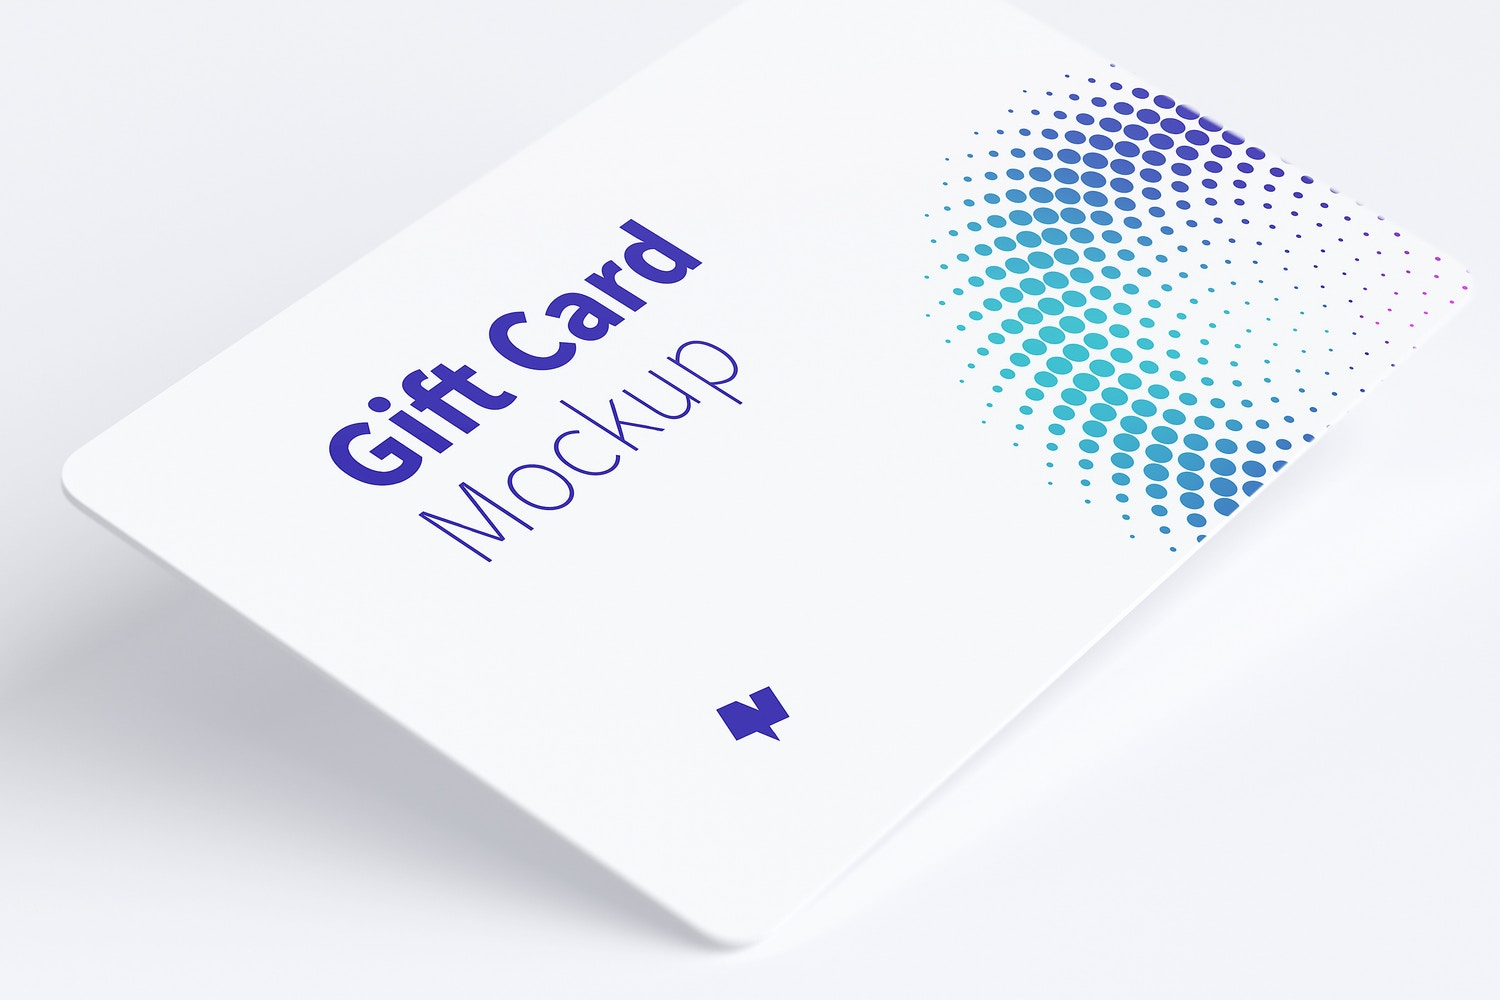 Gift Card Mockup 07 (1) by Original Mockups on Original Mockups